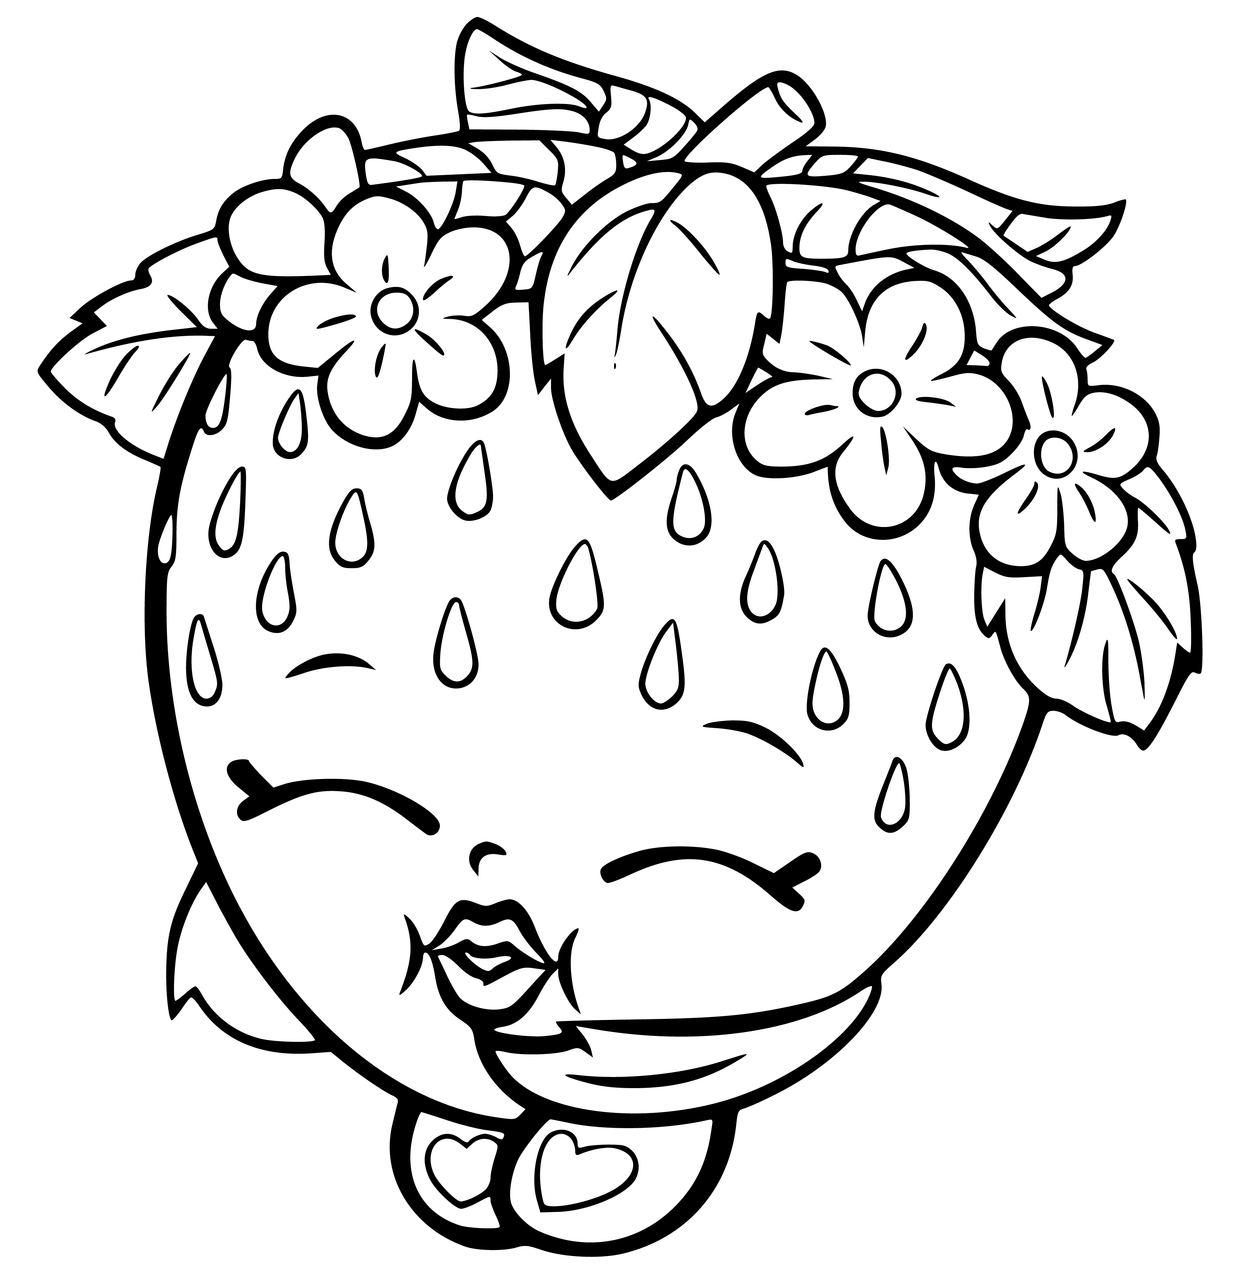 Shopkins coloring pages best coloring pages for kids for Girls coloring pages to print